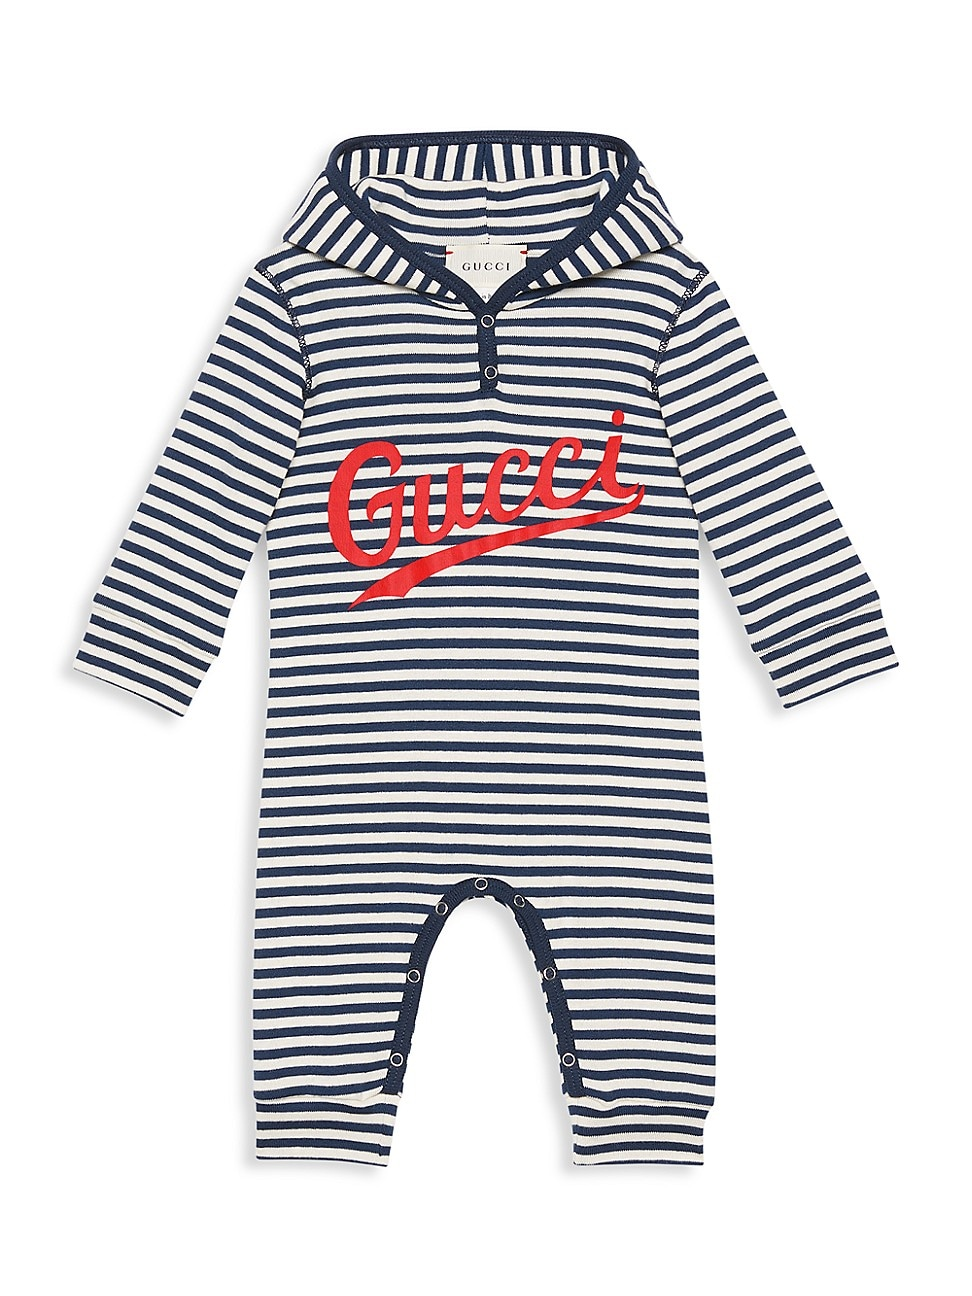 GUCCI BABY'S STRIPED GG COVERALL